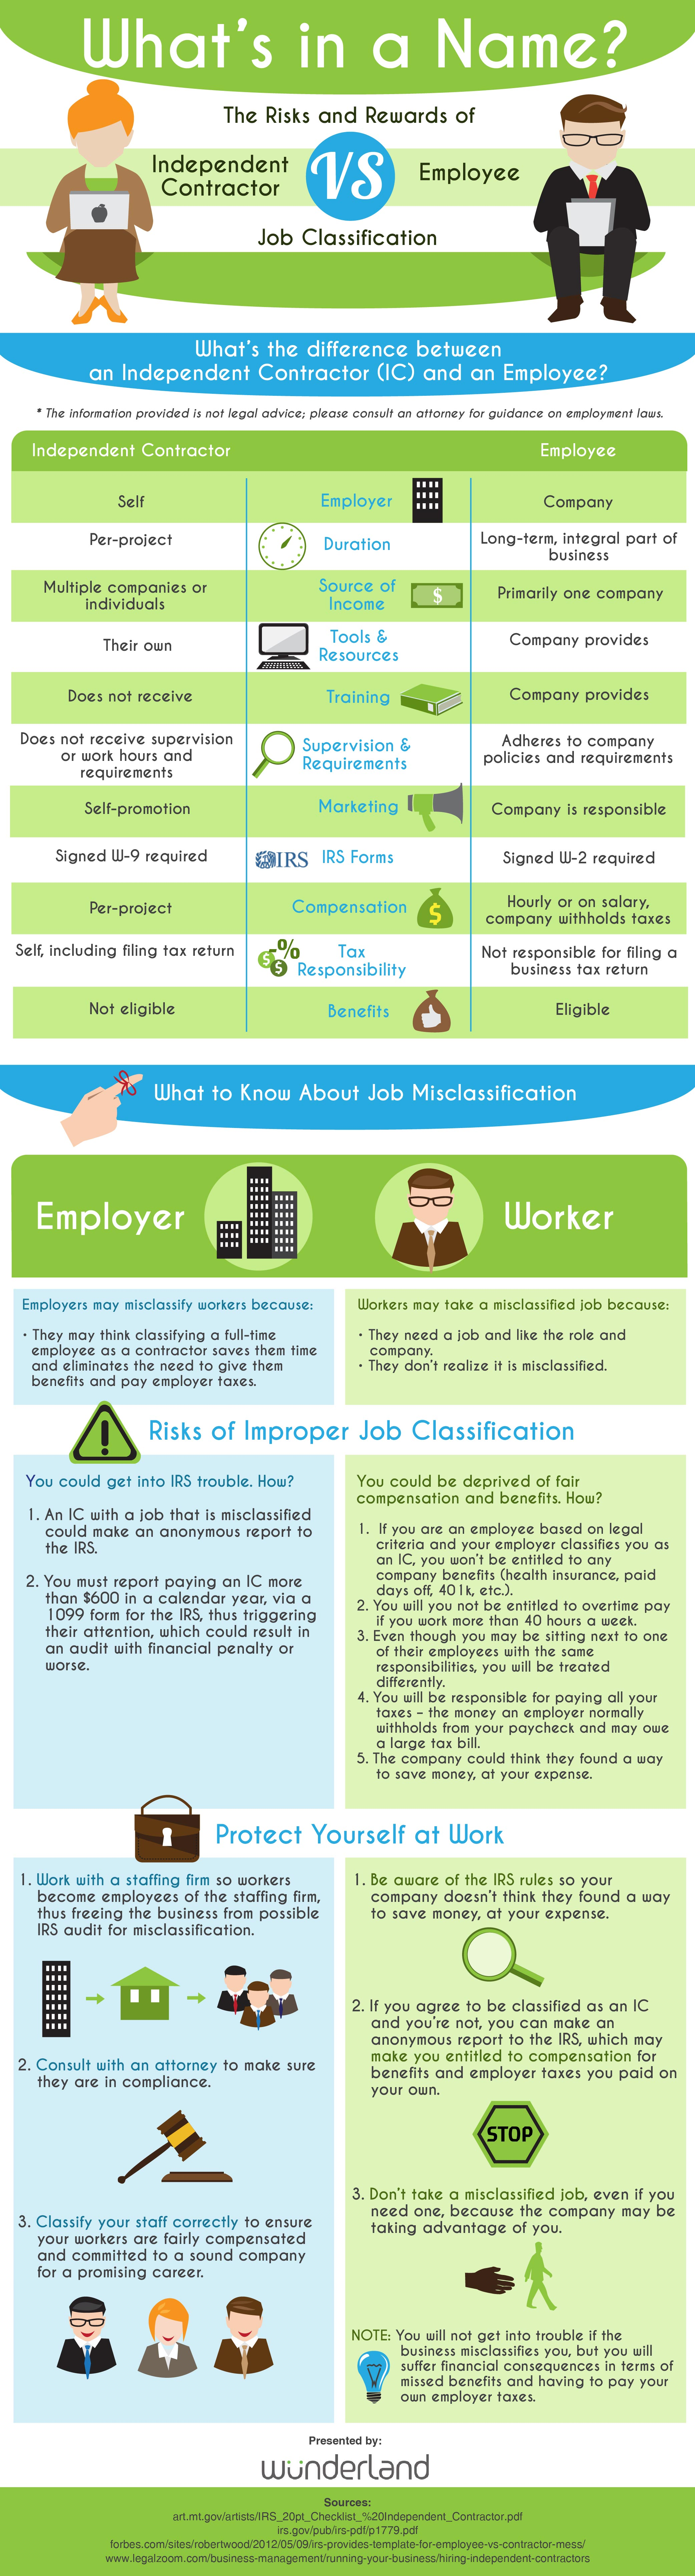 Independent Contractor vs. Employee Risks and Rewards